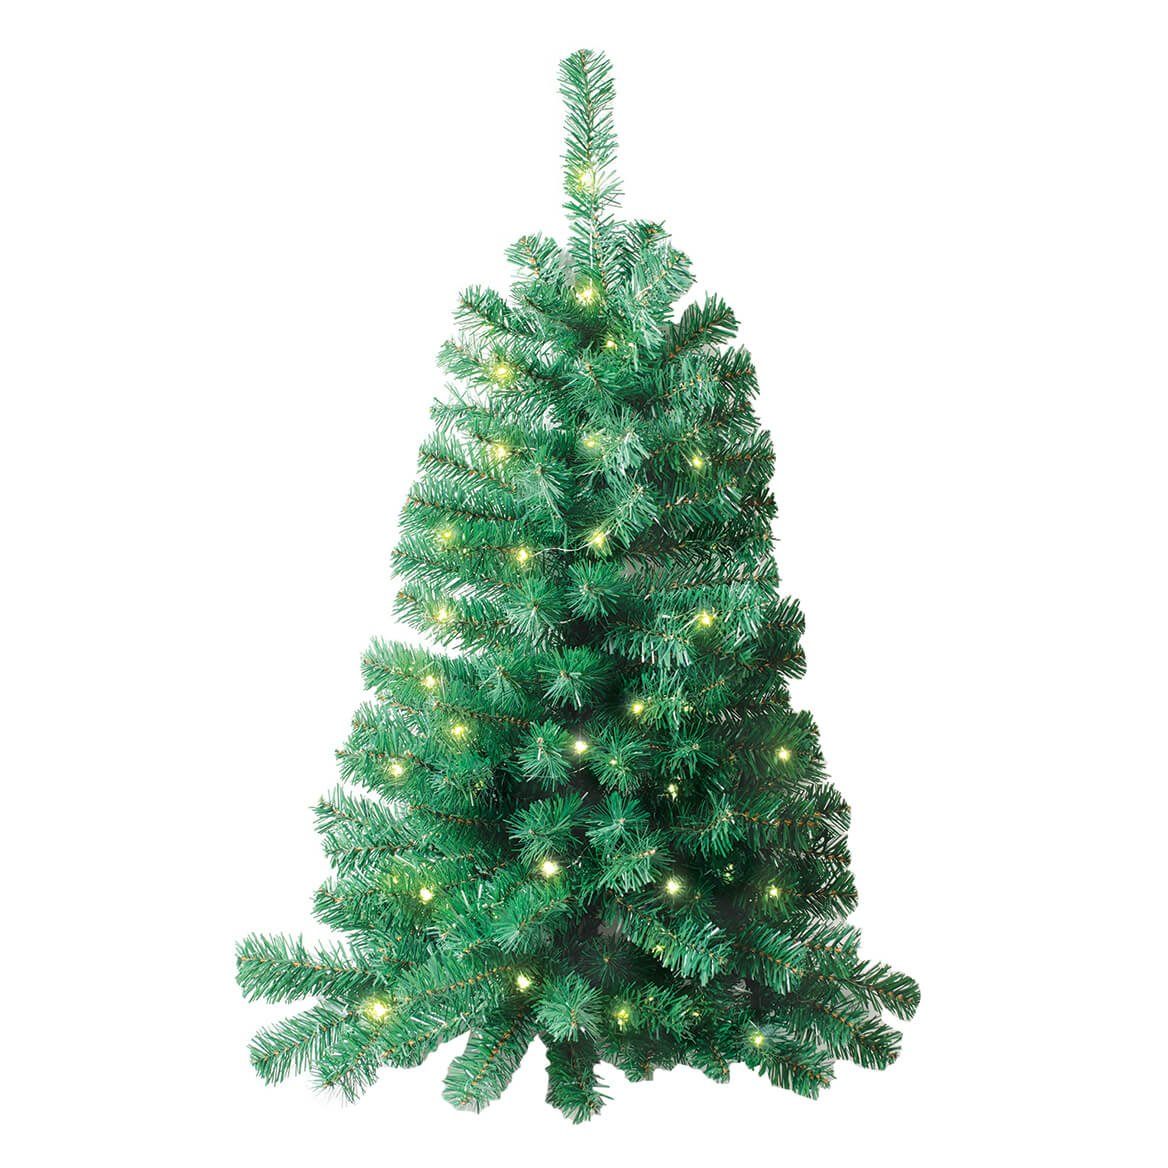 Ideaworks Wall Mounted Christmas Tree Lighted And 3 Feet Tall